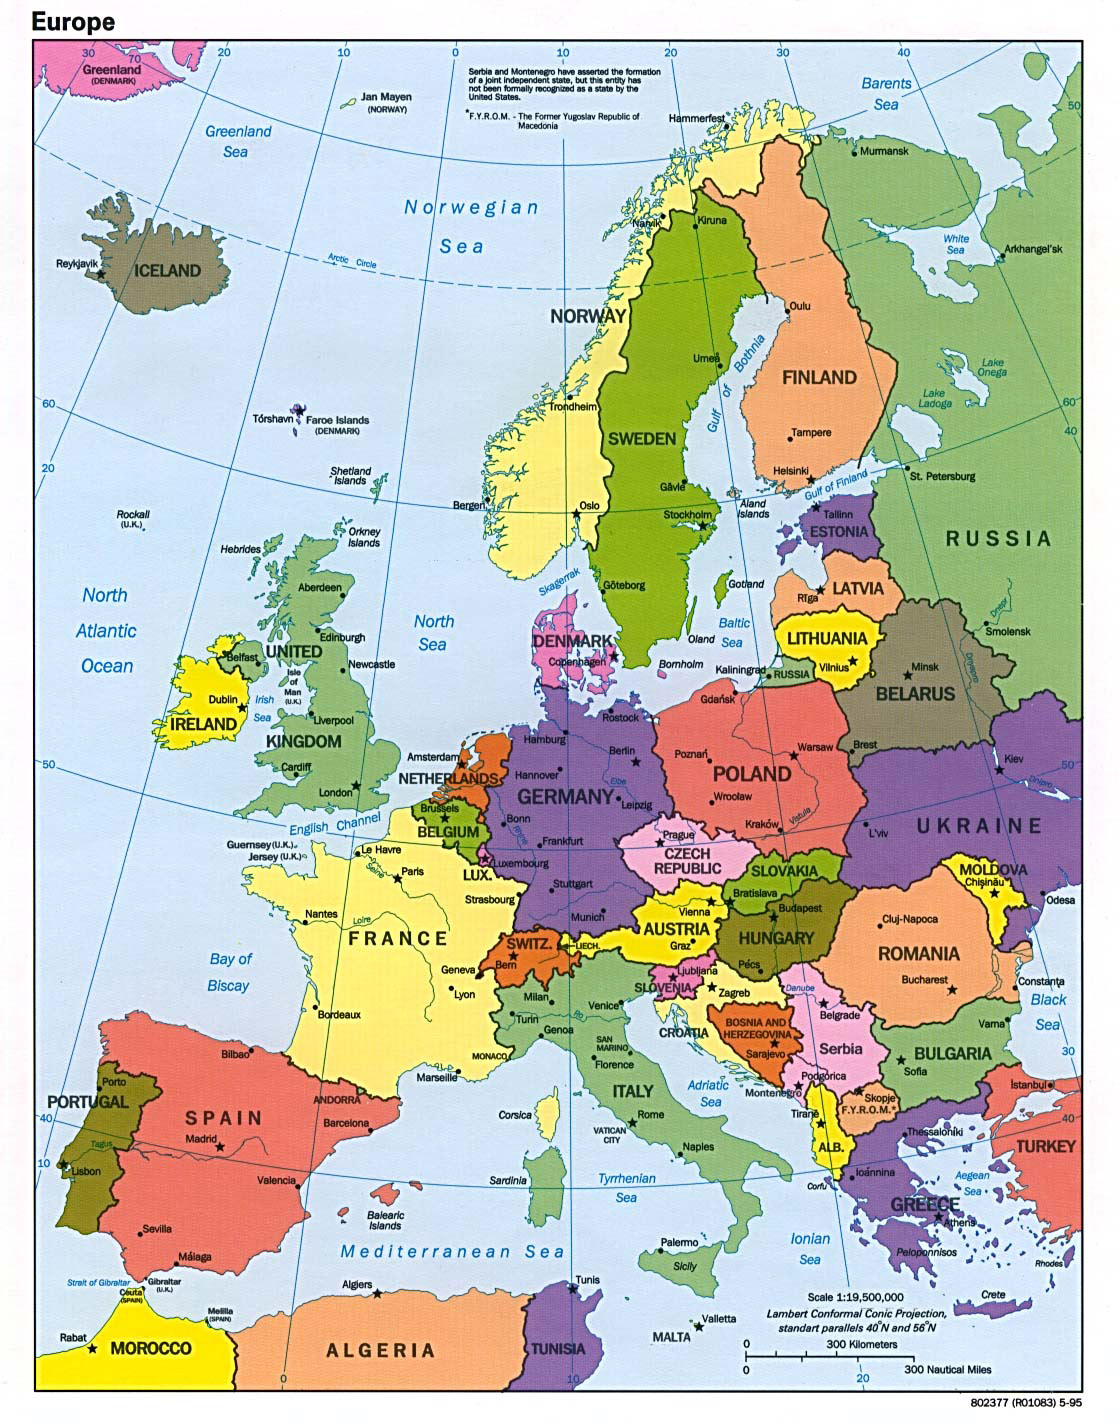 Detailed political map of europe with major cities 1995 europe detailed political map of europe with major cities 1995 sciox Gallery